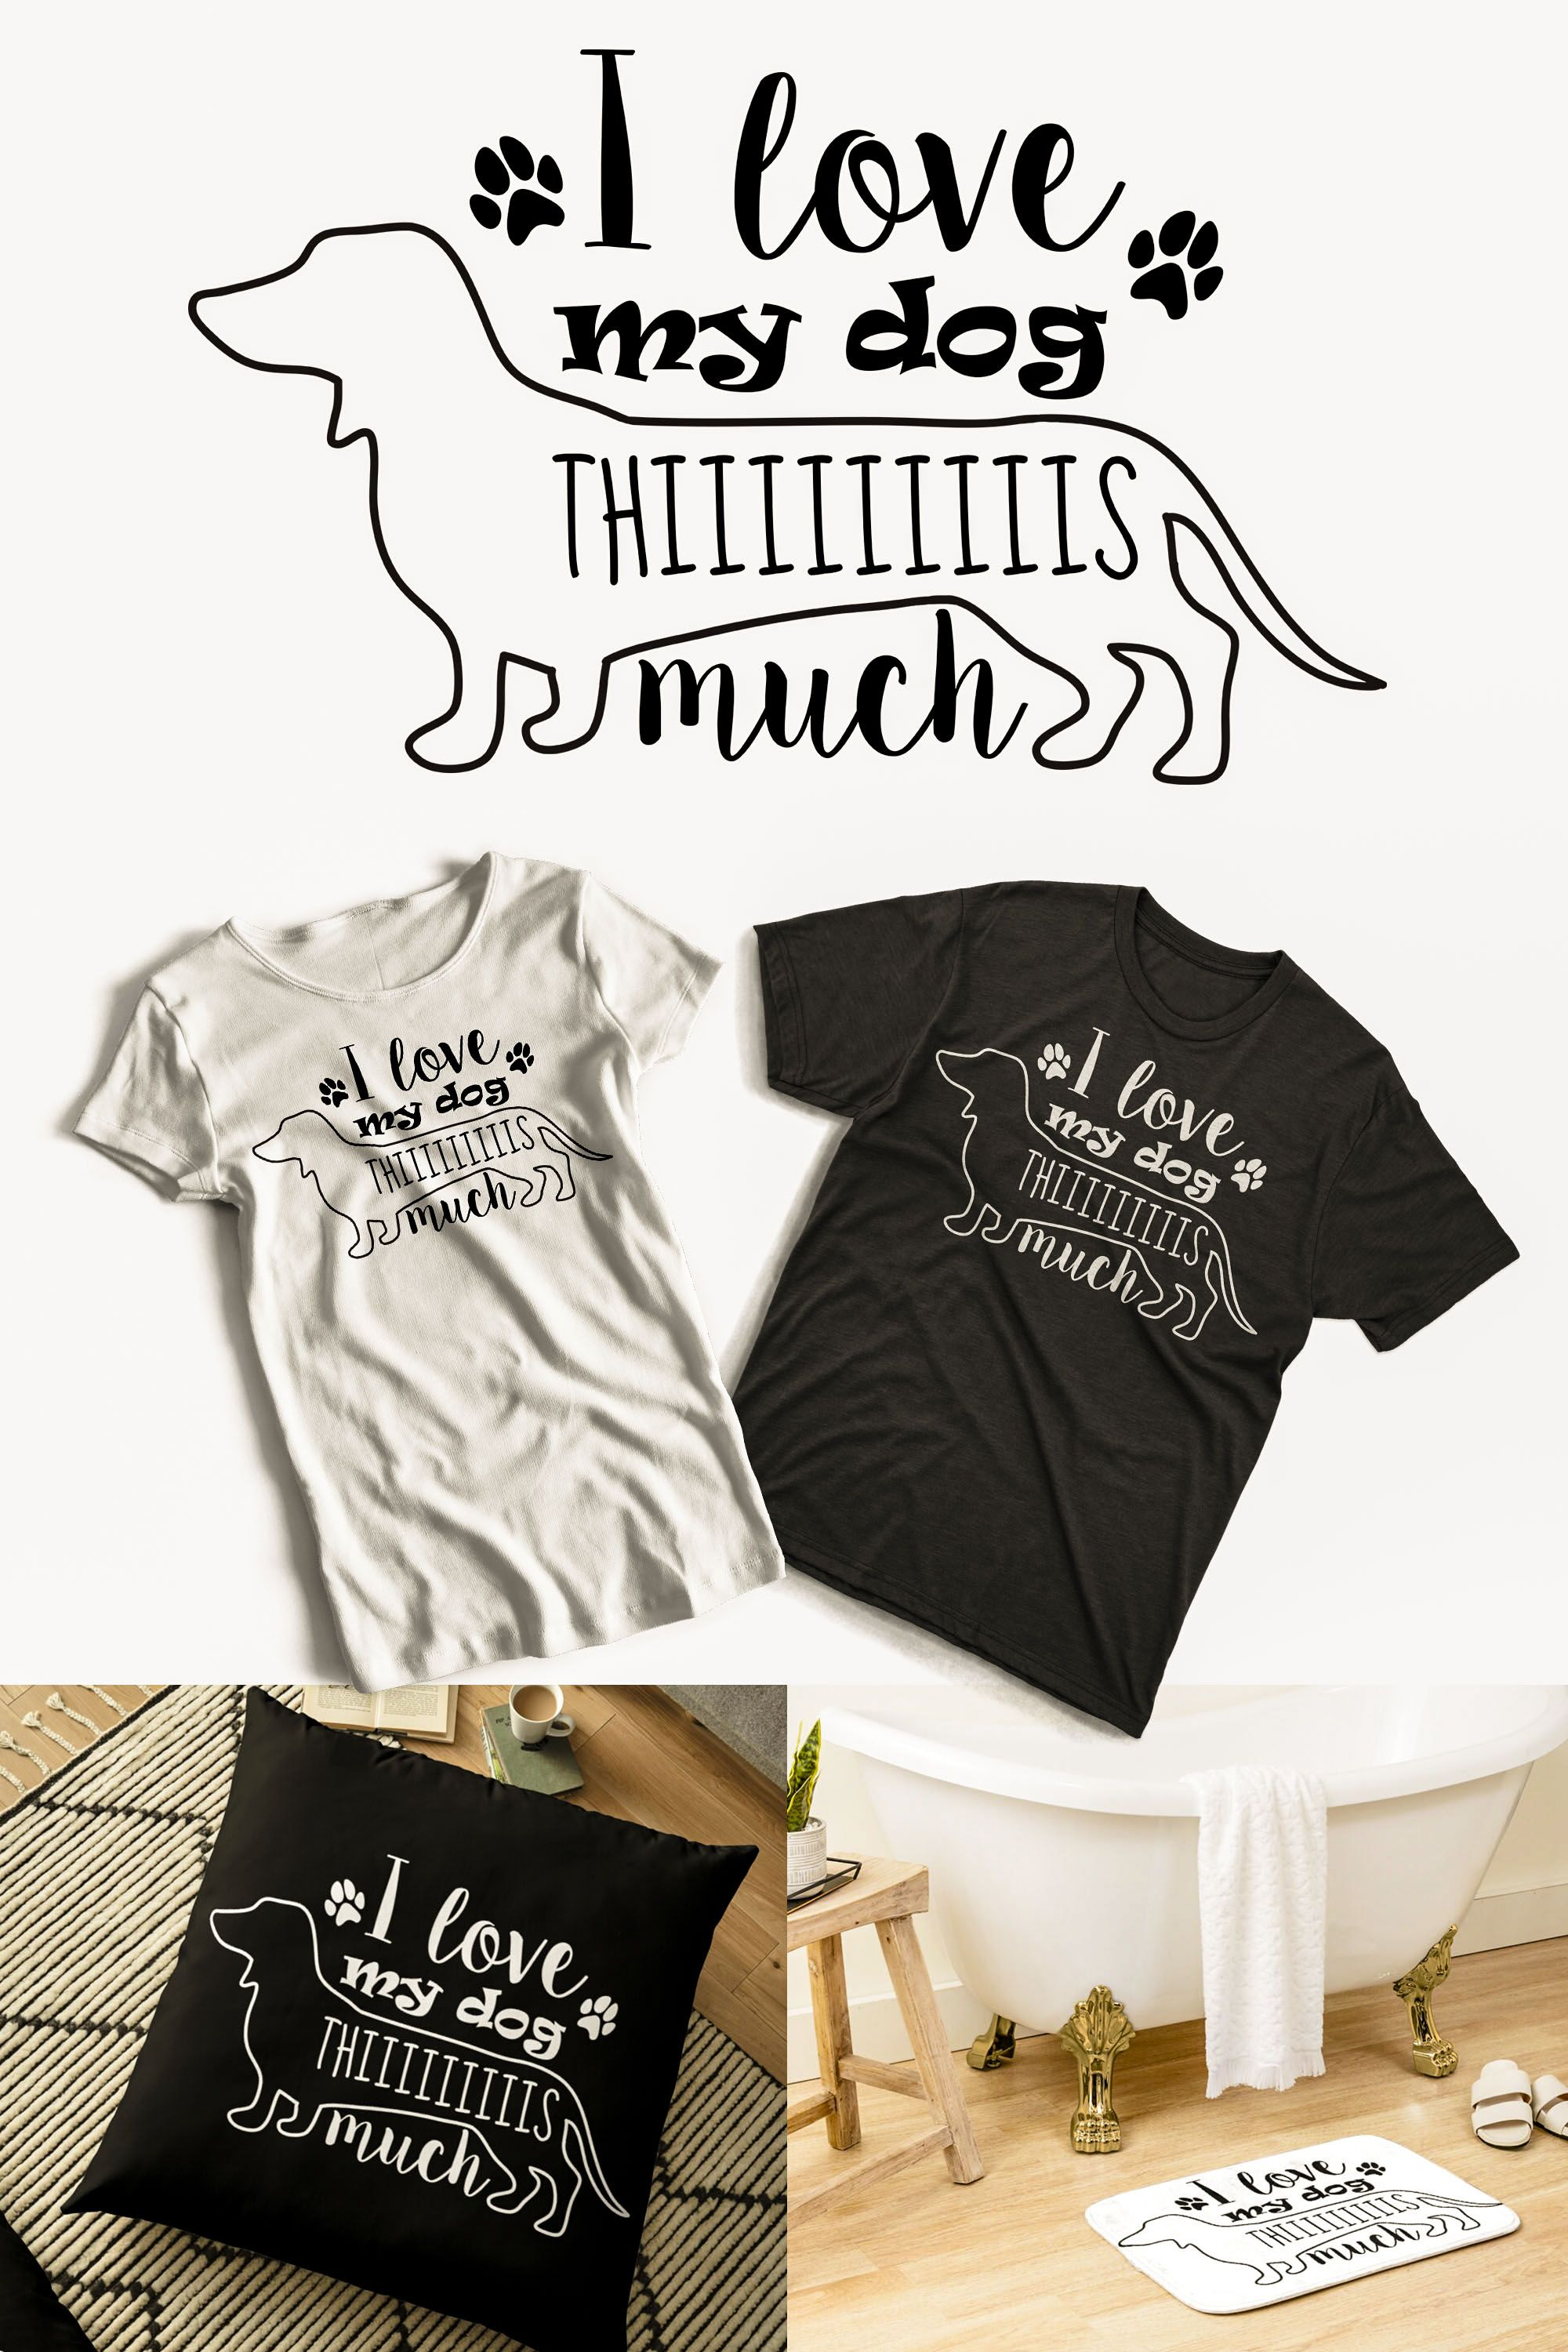 Funny and cute dachshund design for all dog owners who adore their furry friends.